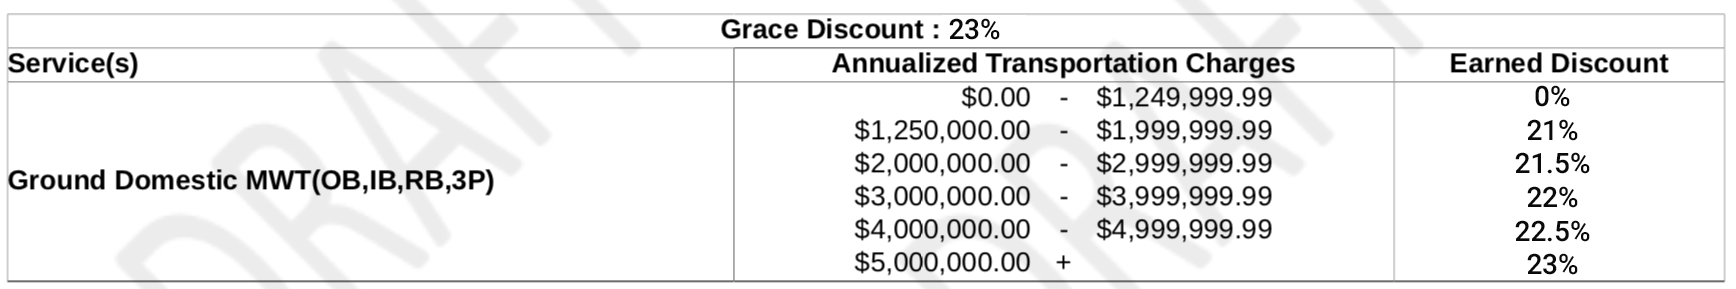 Fedex discounts by package type in carrier pricing agreement